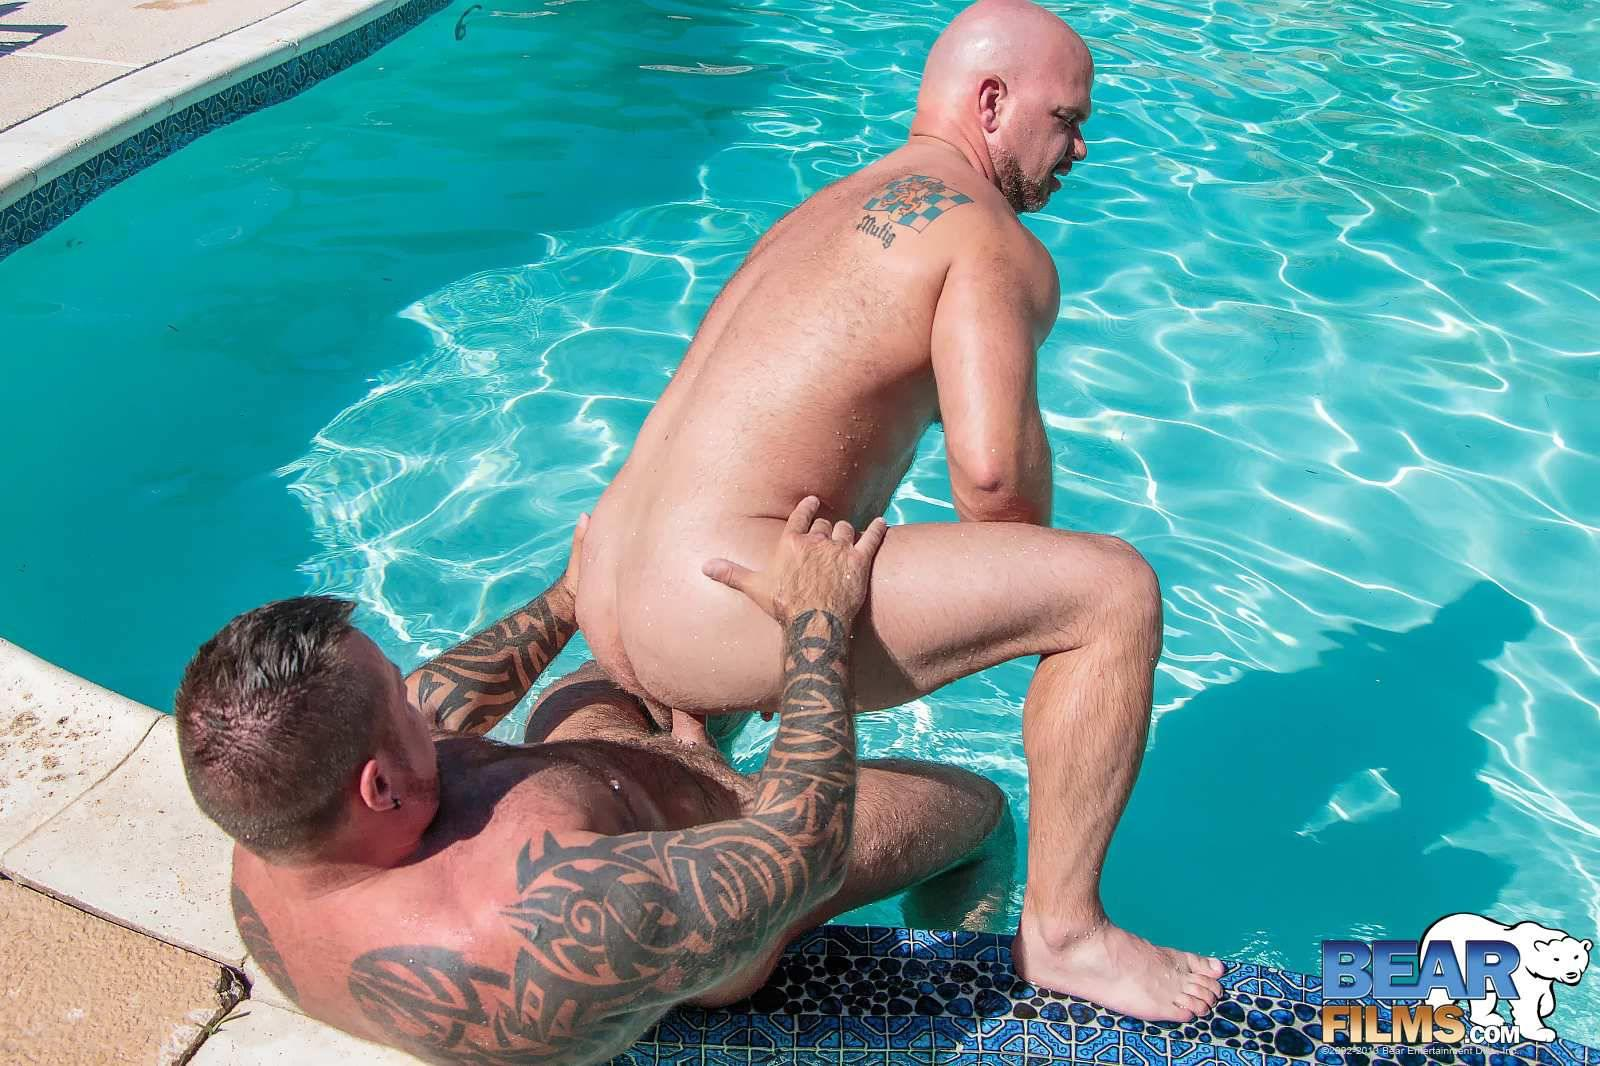 Bear Films Marc Angelo and Wade Cashen Hairy Muscle Bears Fucking Bearback Amateur Gay Porn 16 Hairy Muscle Bears Fucking Bareback At The Pool